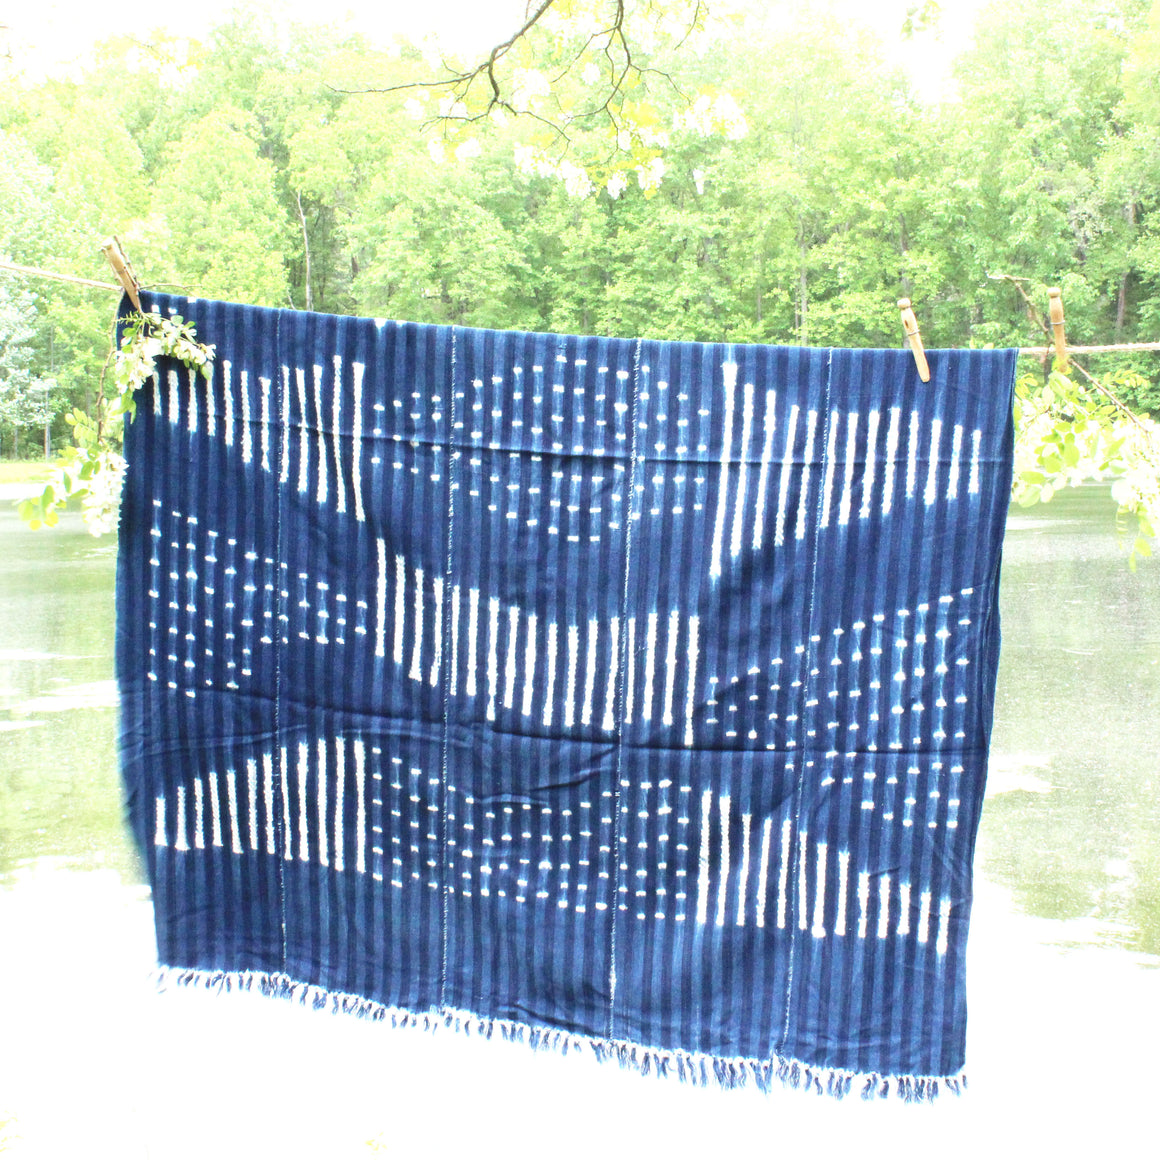 Mudcloth Throw - pattern 1